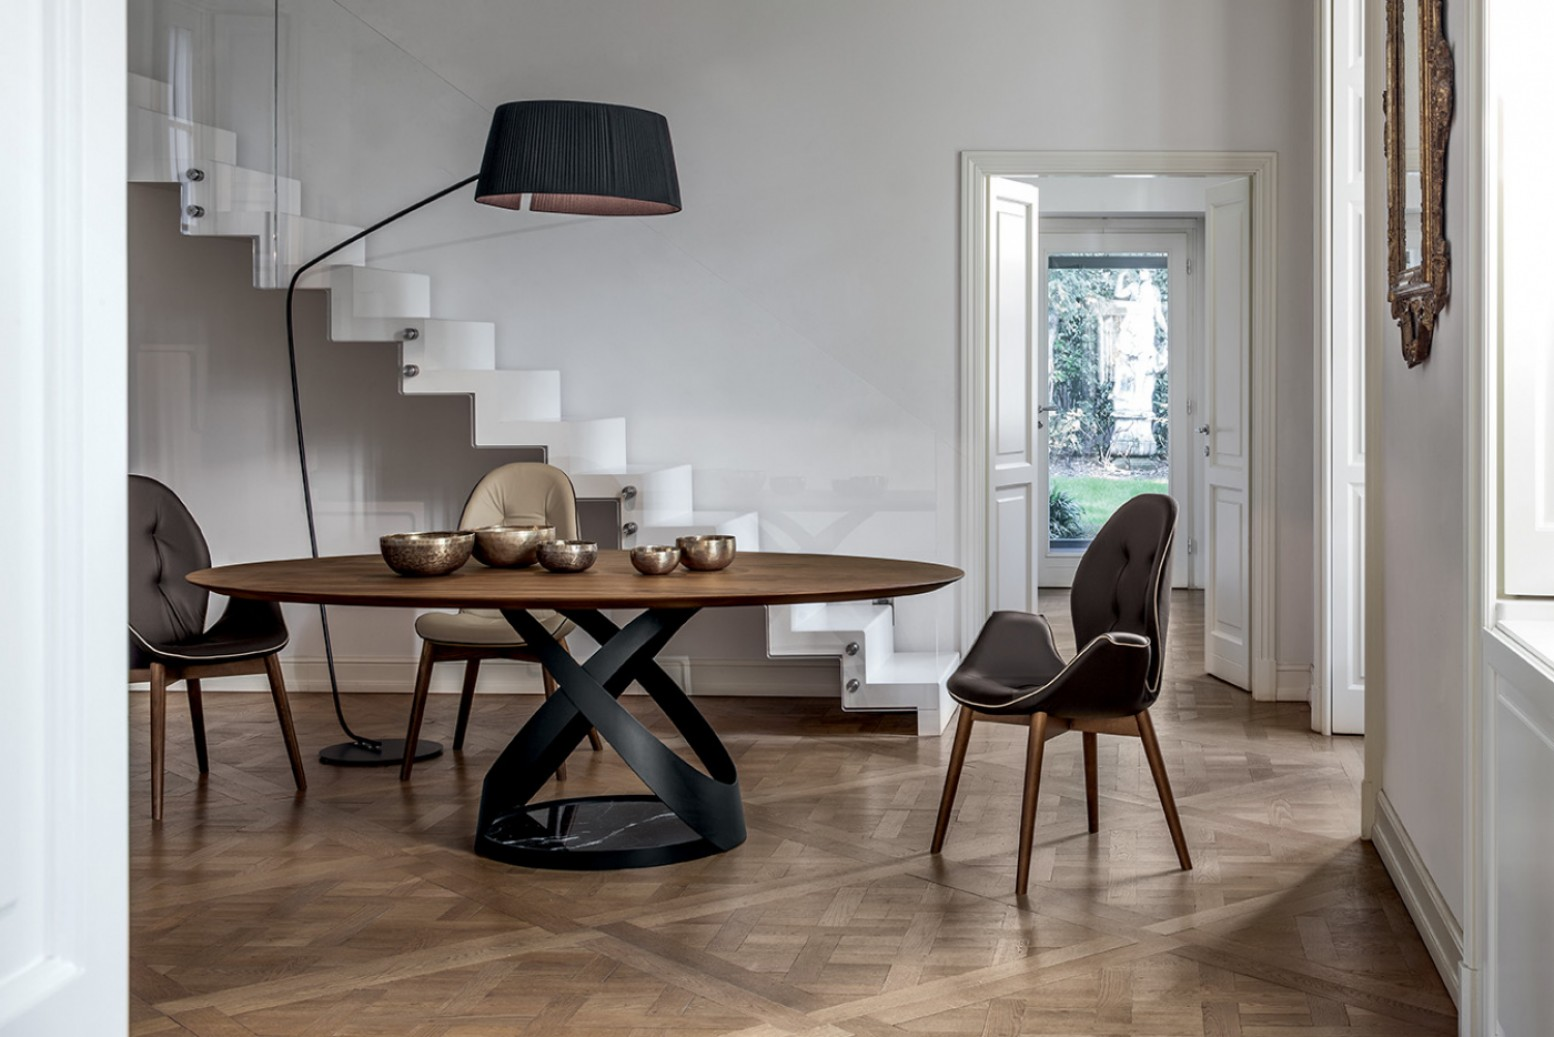 Capri Small Round Dining Table Matt Black Metal Base Marquina Black Marble Canaletto Walnut Wood Top Buy Online At Best Price